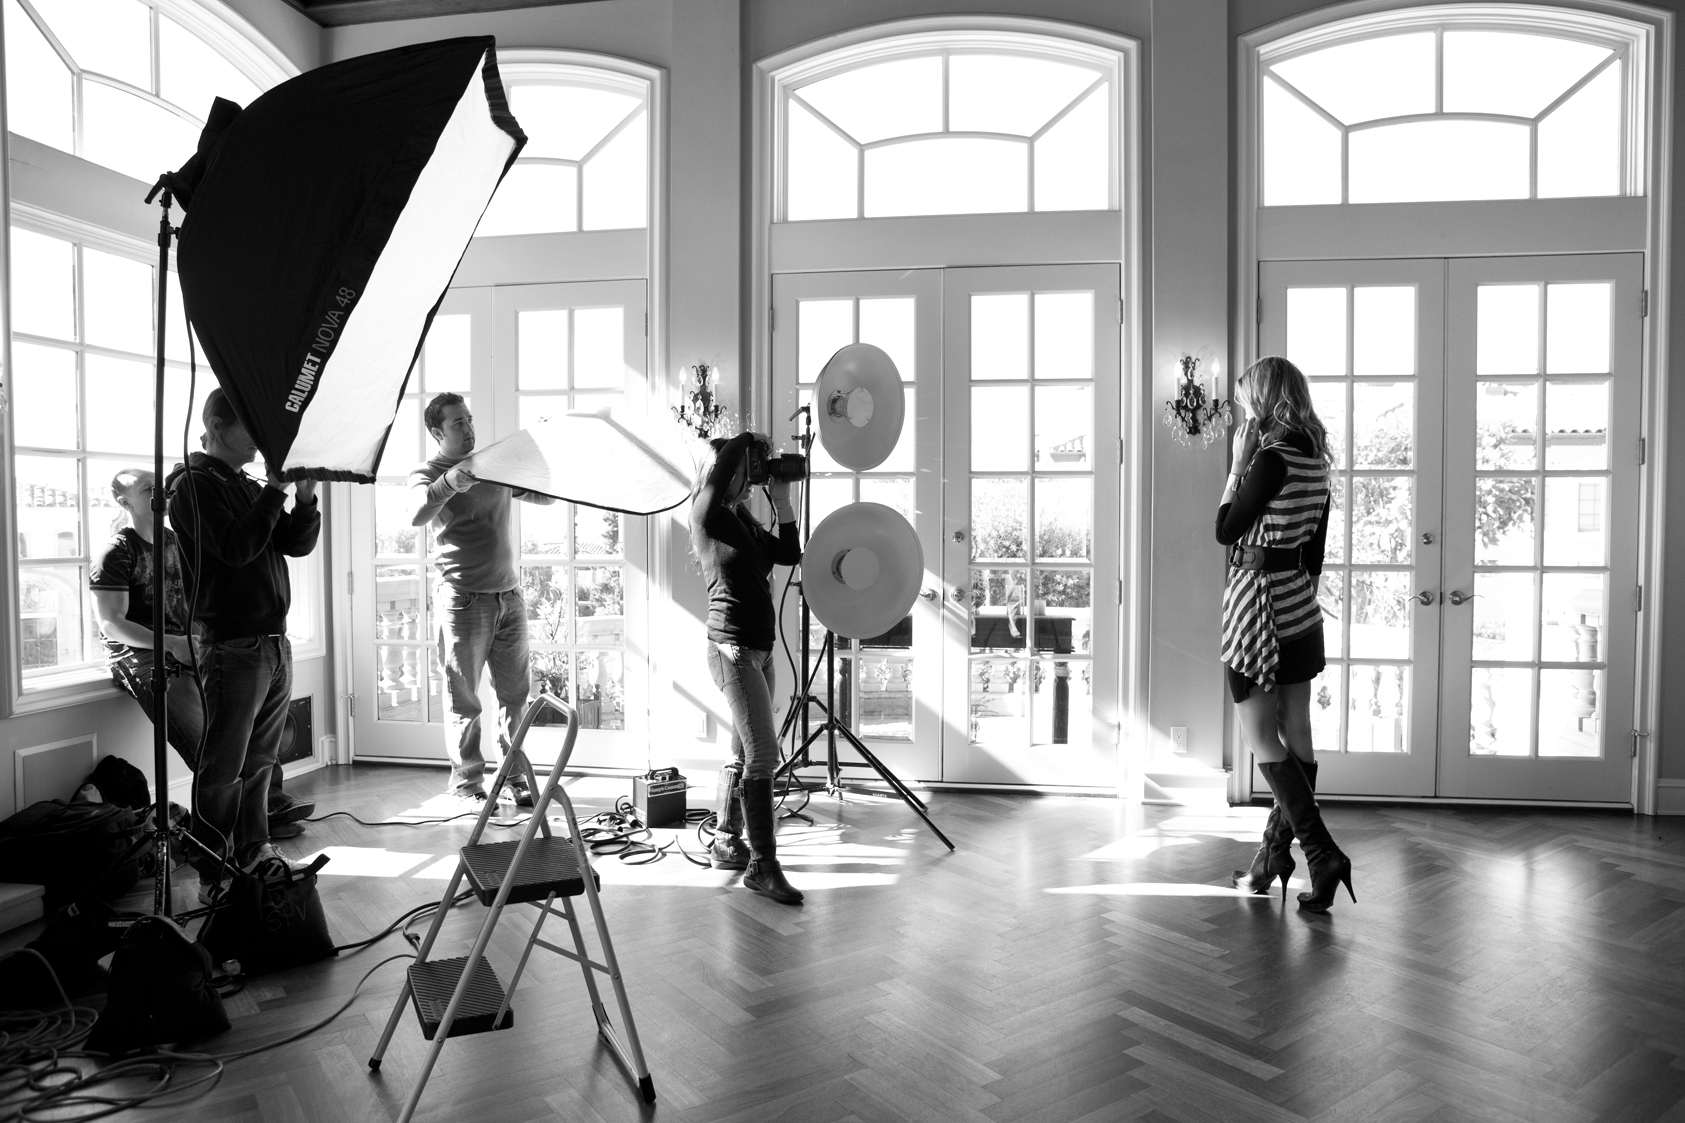 A standard set up, with soft boxes, reflectors, beauty dishes and a good source of natural lighting